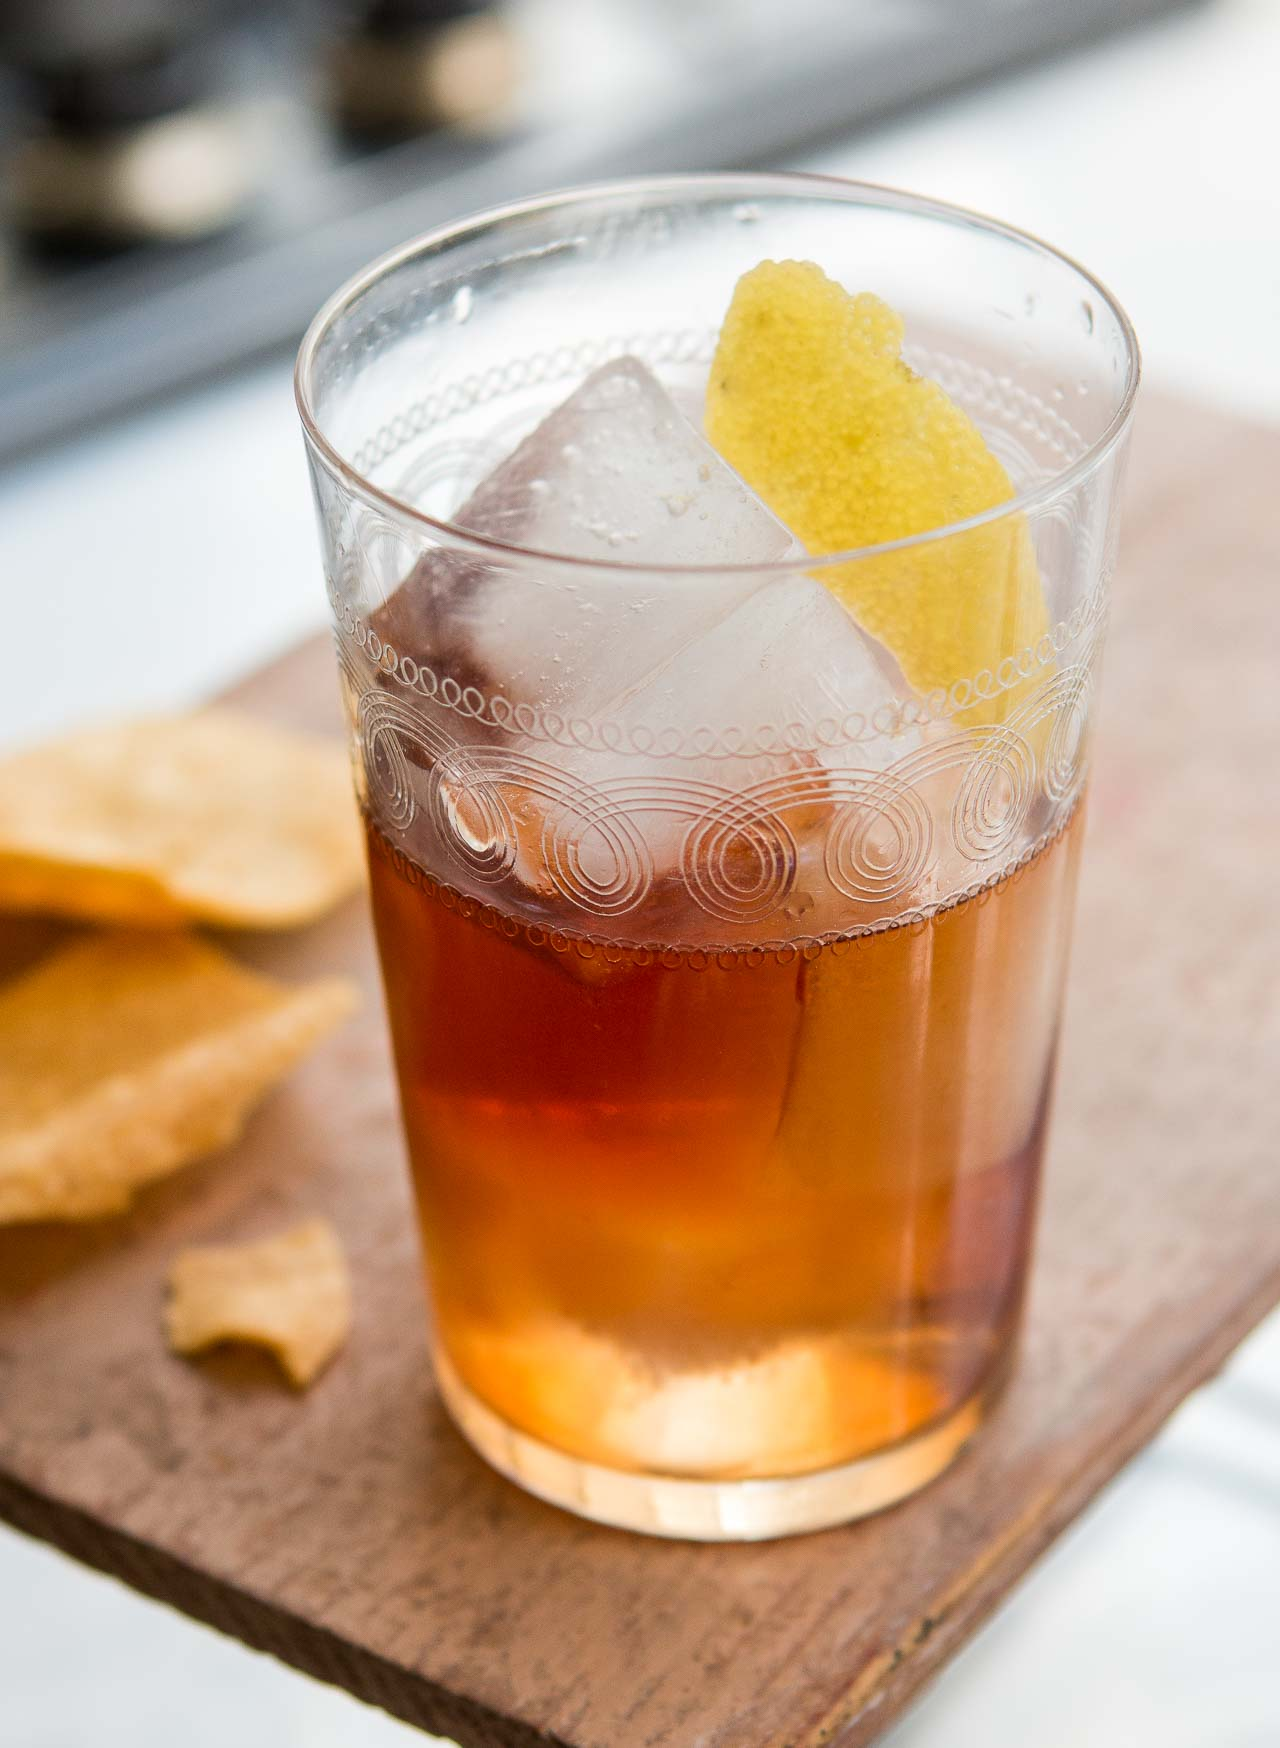 Vieux Carré cocktail: A delicious New Orleans cocktail inspired by the flavors of France!